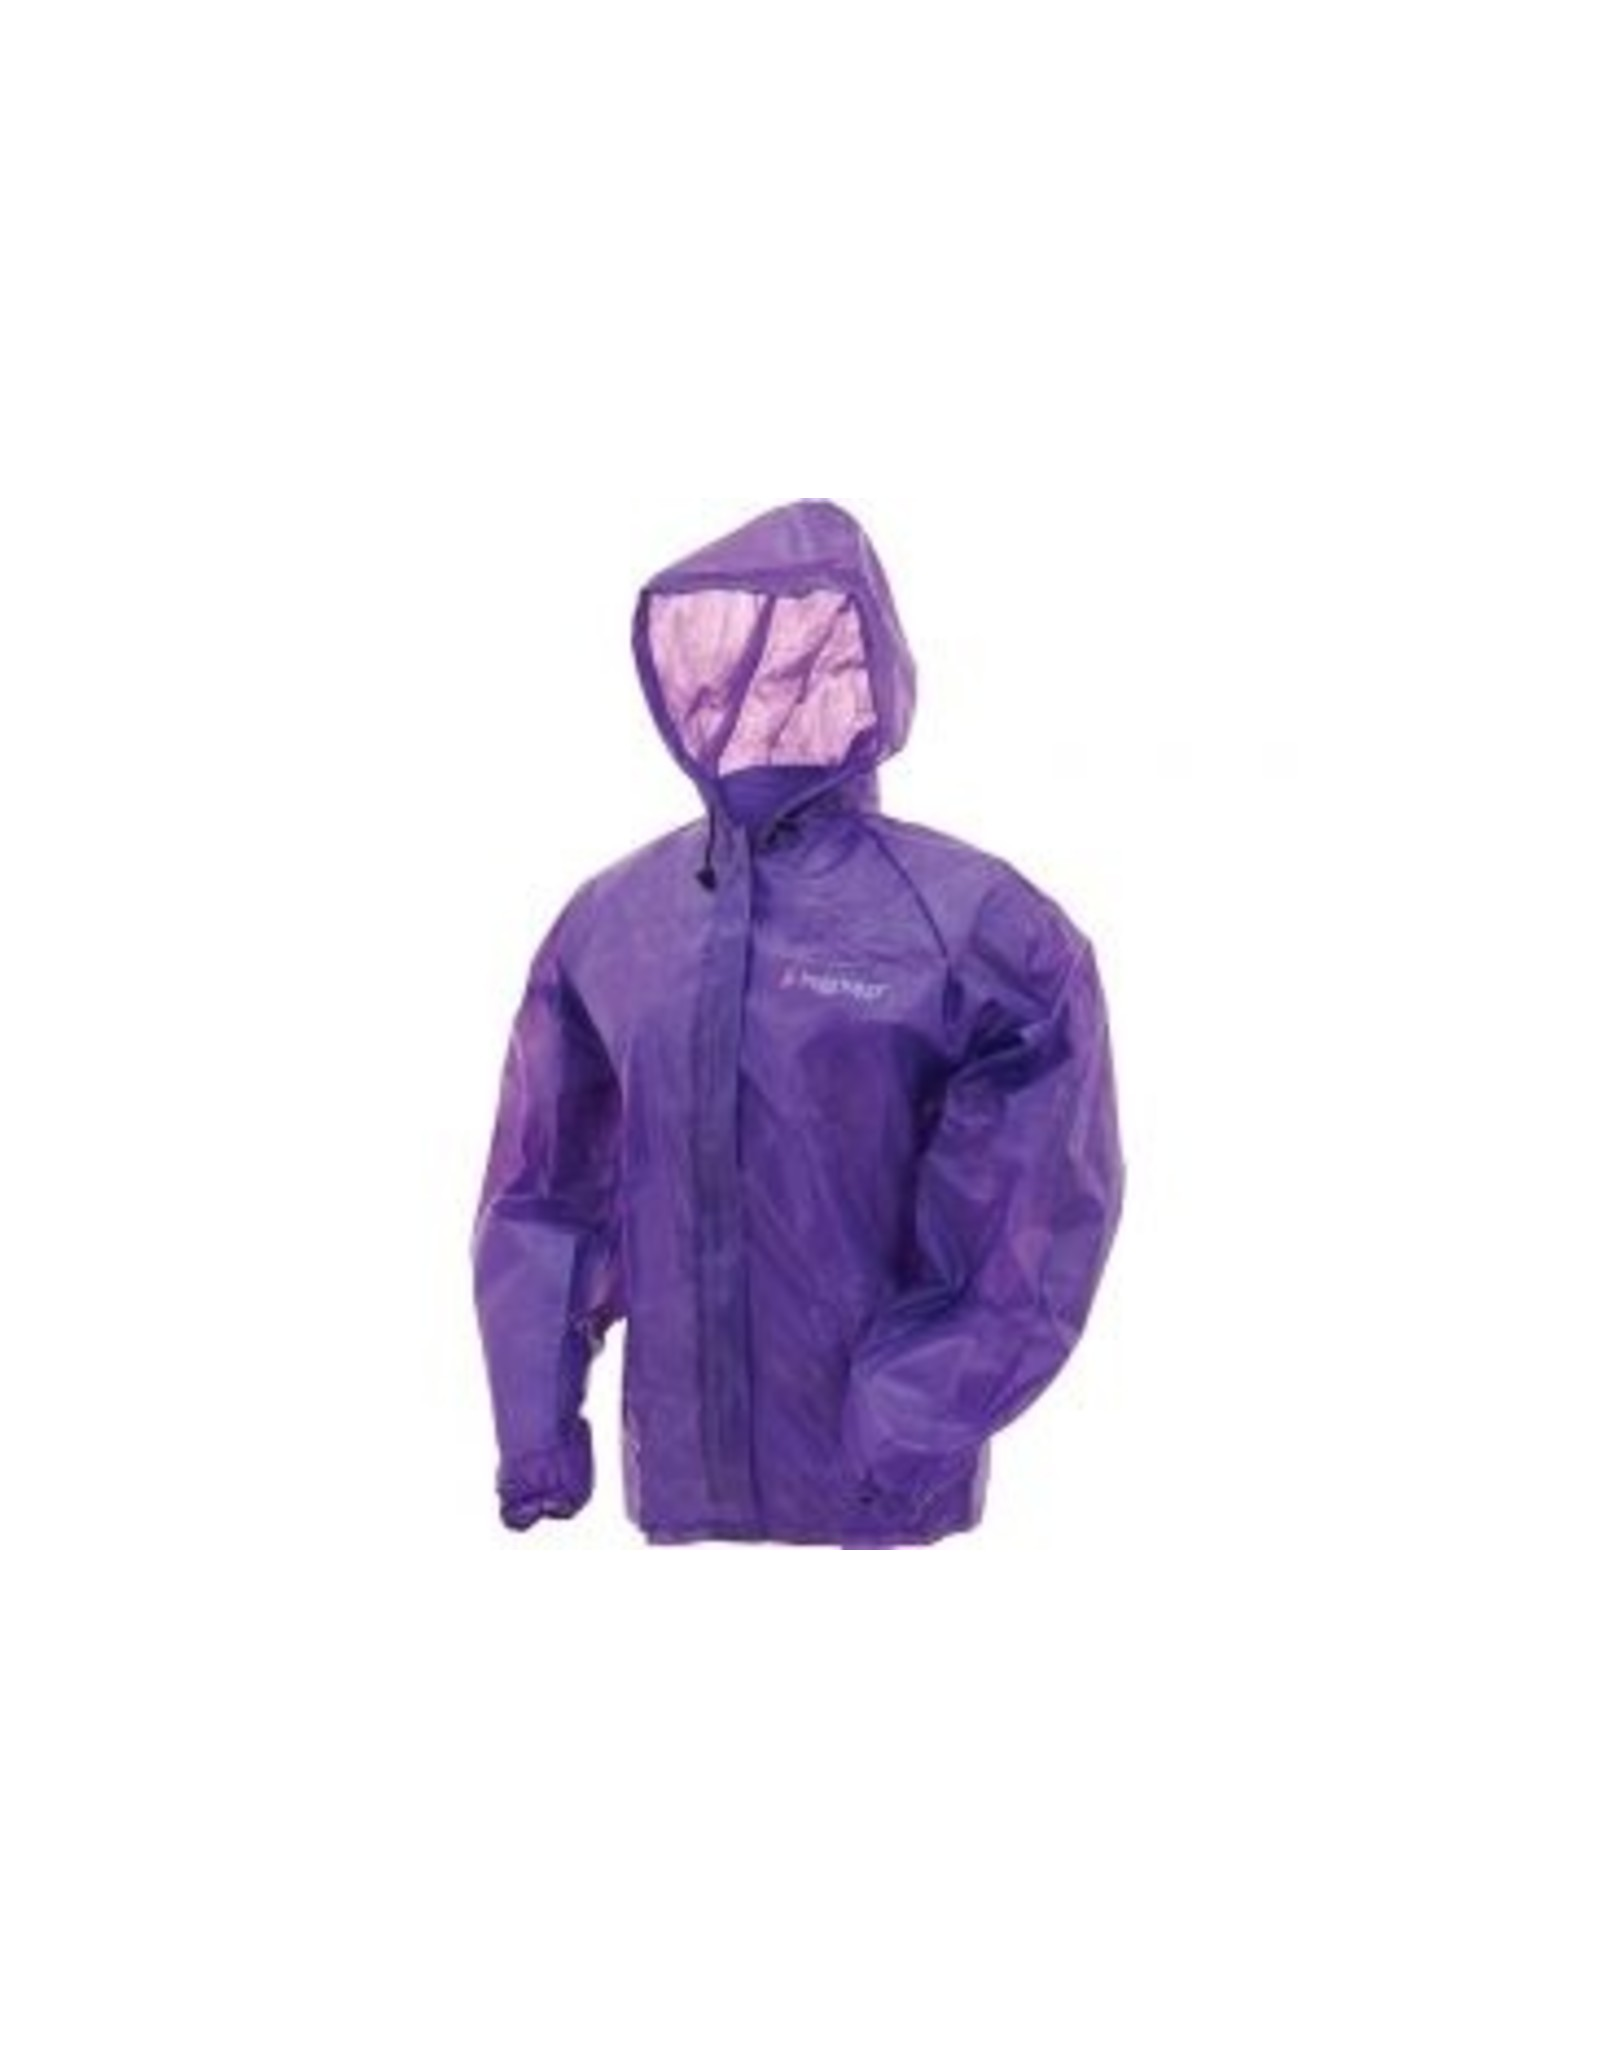 FROGG TOGGS FT EMERGENCY JACKET PURP S/M